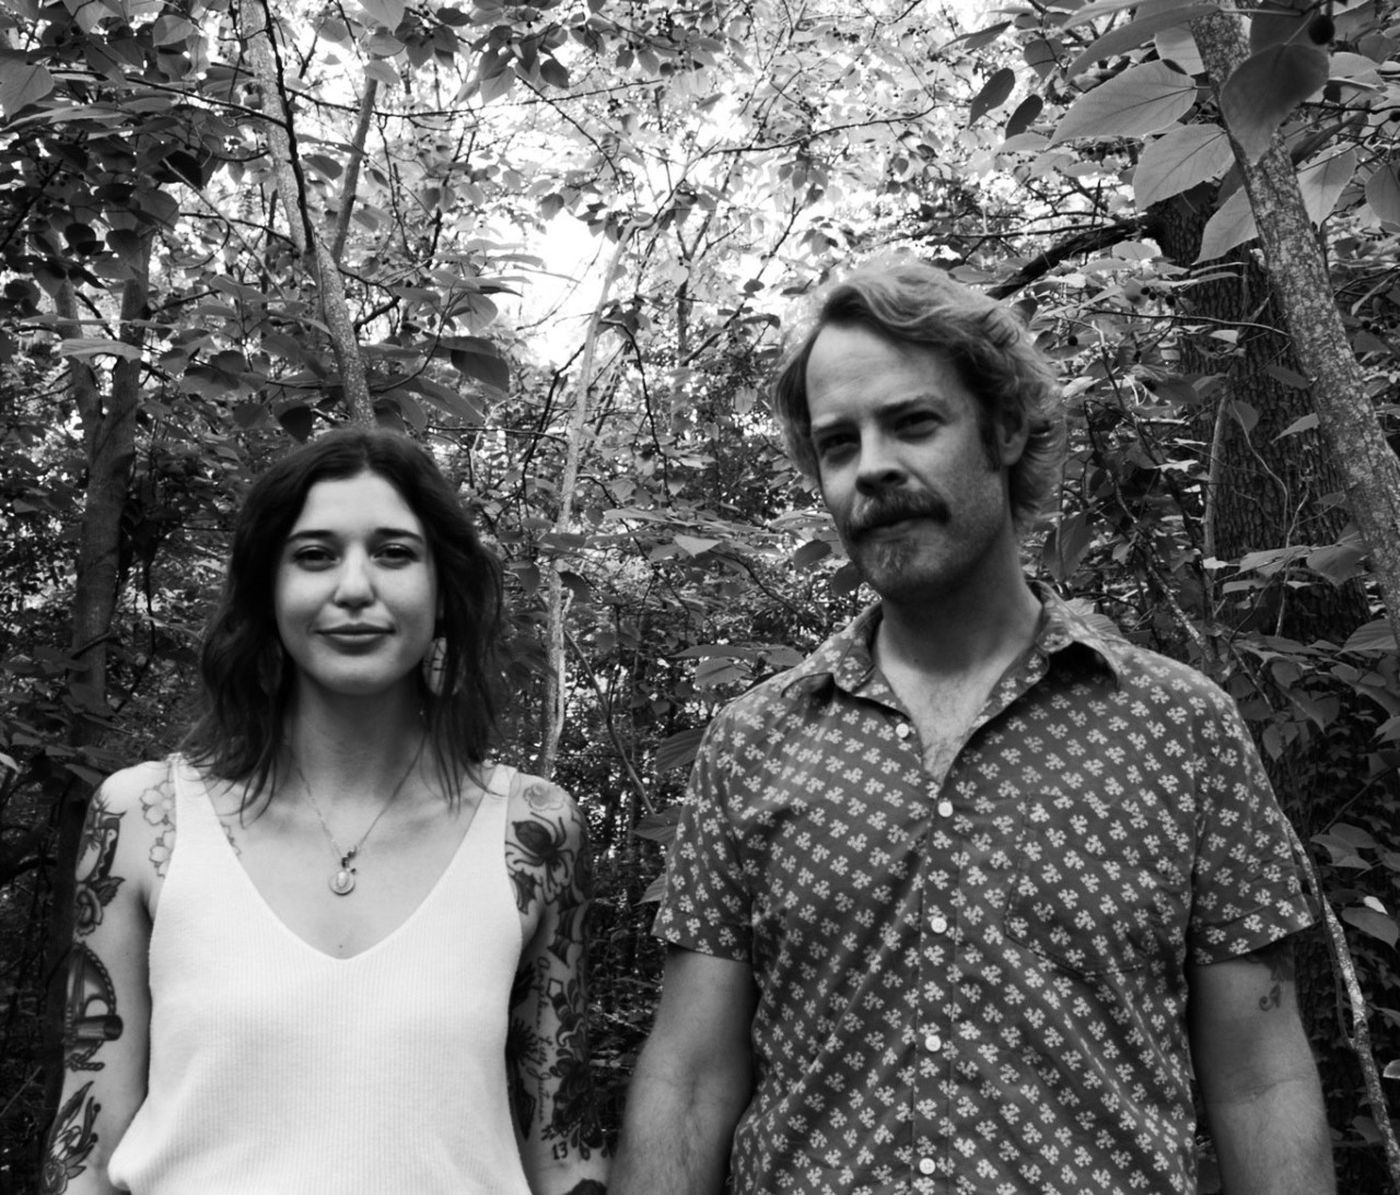 Baton Rouge Americana/soul duo Molly Taylor and Denton Hatcher will still be heading to Austin, Texas for a three-day stint of shows, despite the city canceling South By Southwest.